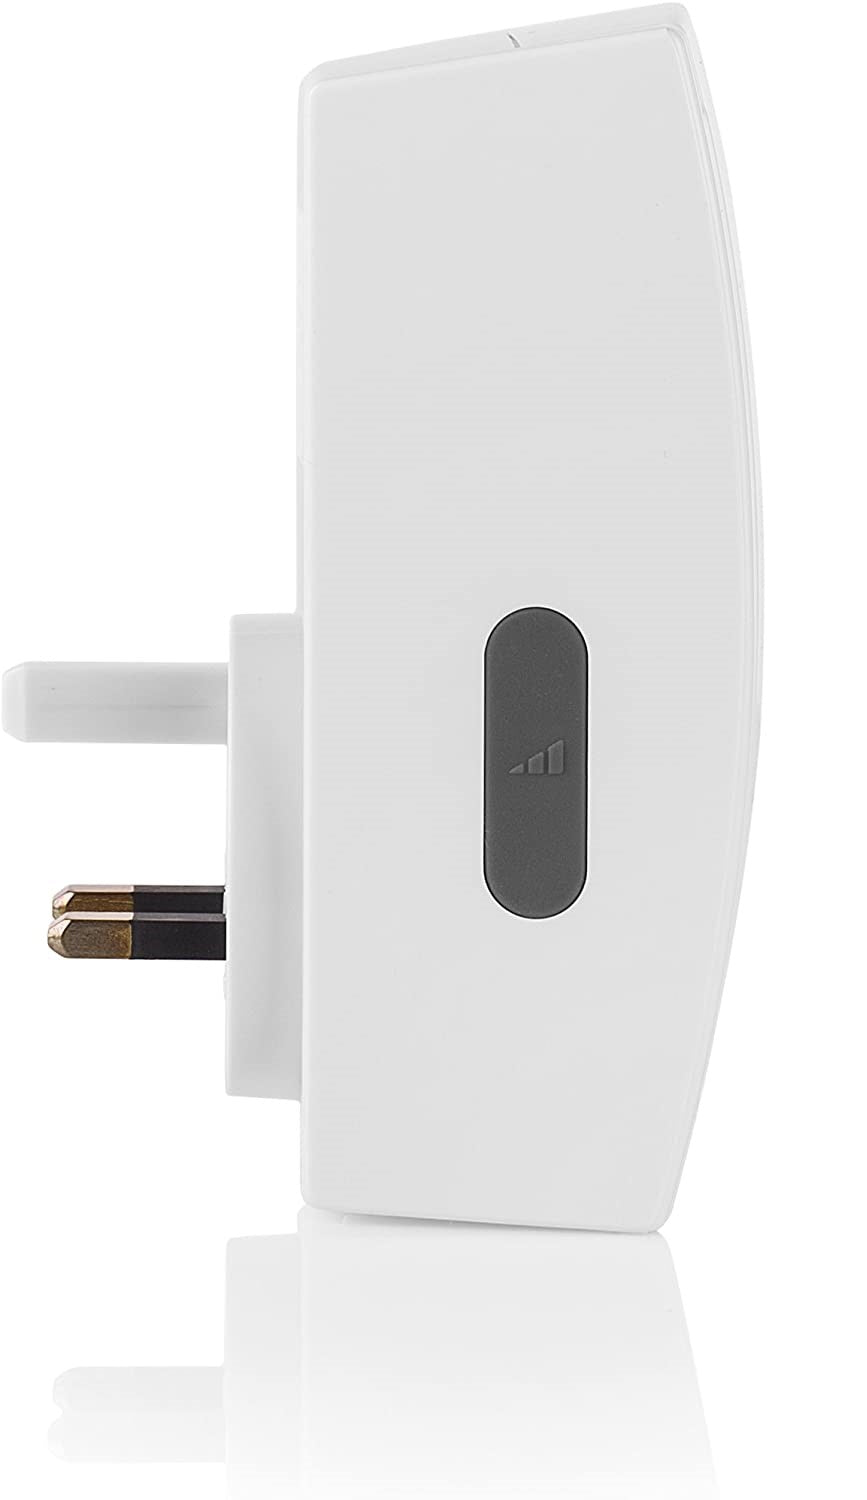 Byron BY511x 125m Additional Wireless Doorbell Plug-in Chime - No bell push